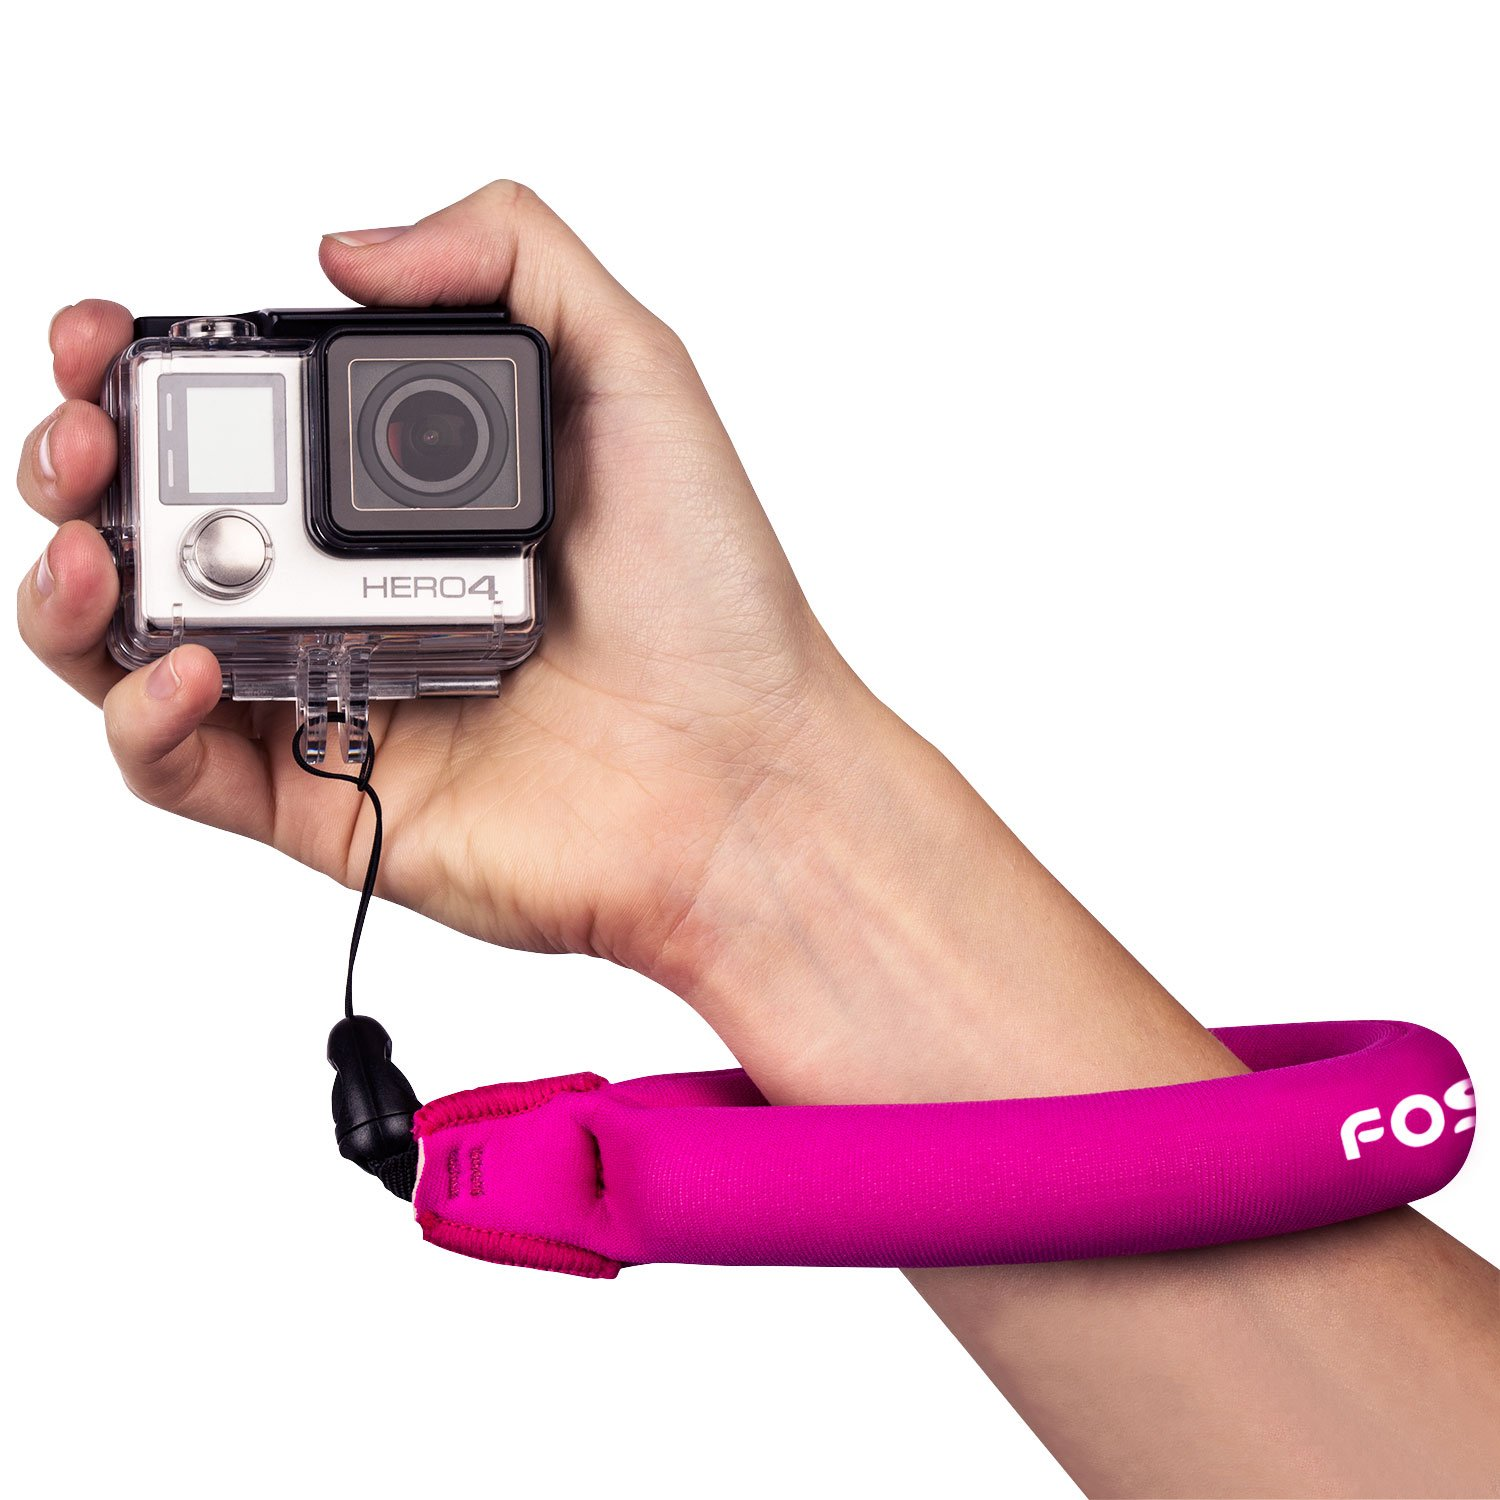 Fosmon Universal Floating Wrist Strap for Underwater Camera, Phone, Keys and More (Pink) Fosmon Technology A1694